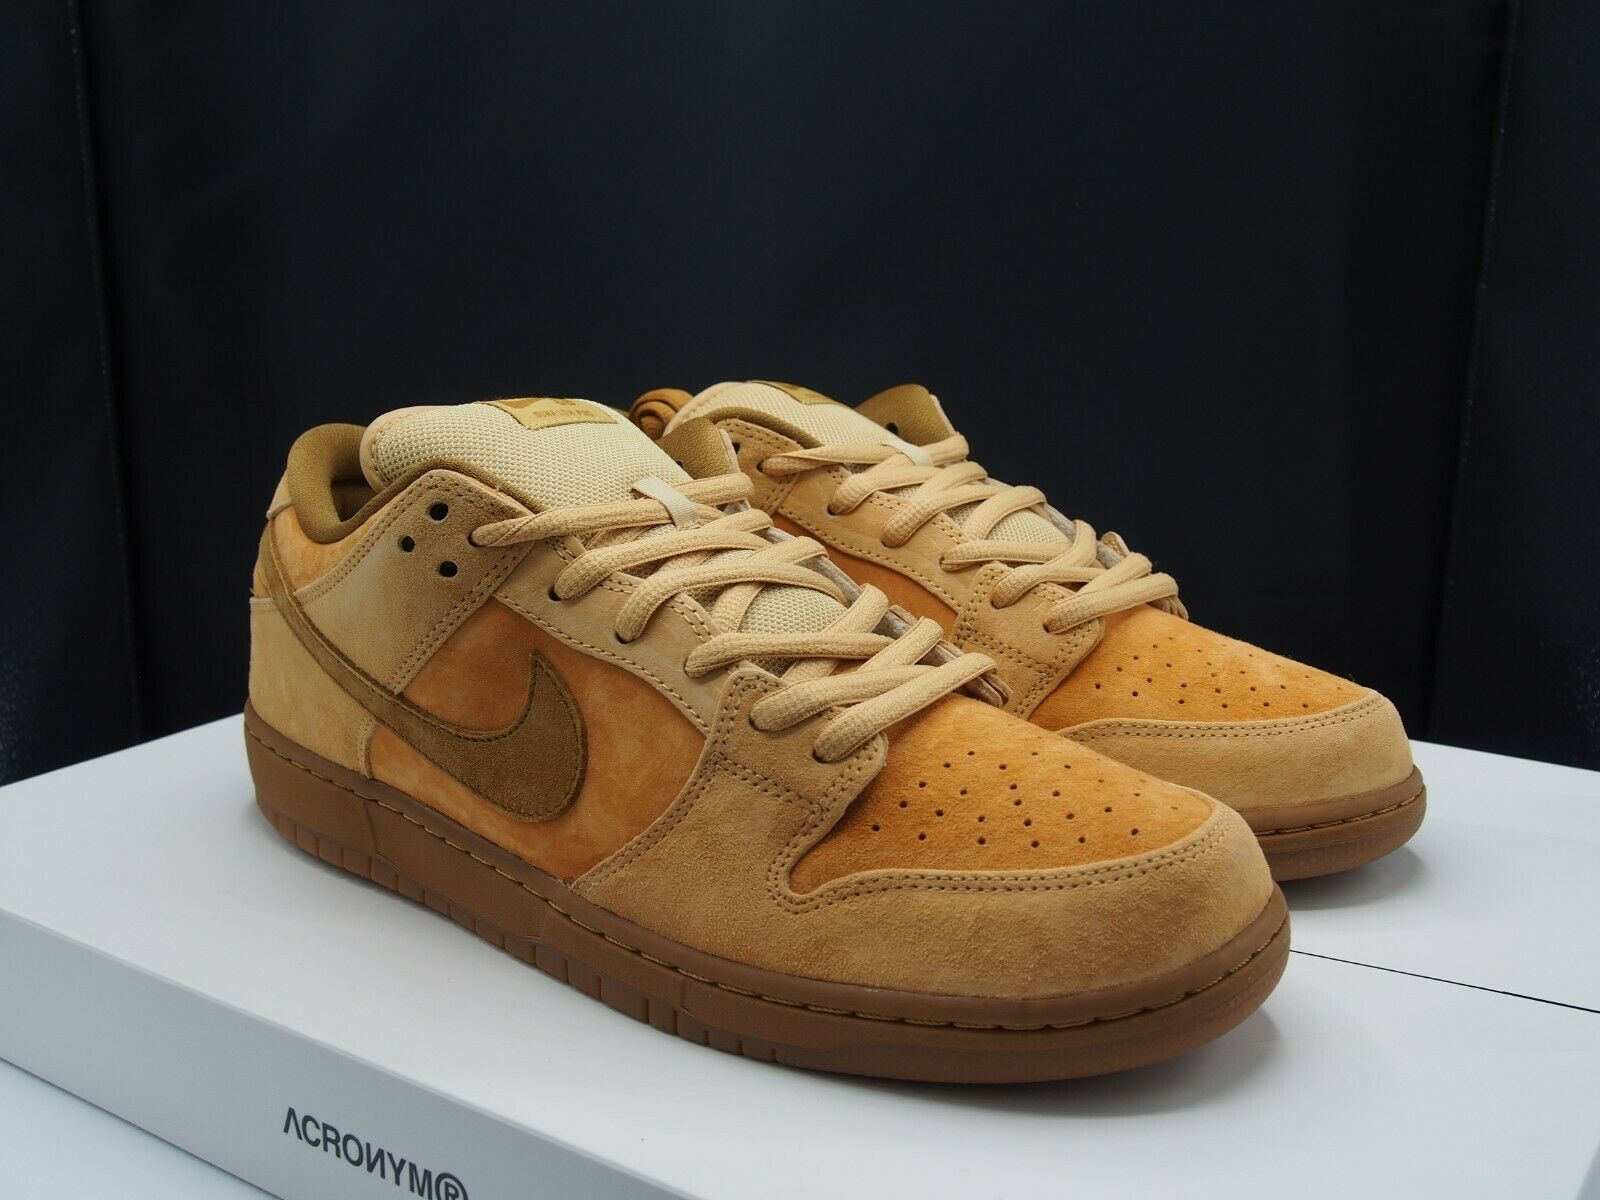 uk availability 609f7 c83ec Nike SB Dunk Low TRD QS 883232-700 Reverse Reese Forbes Wheat Dune DS Size  13